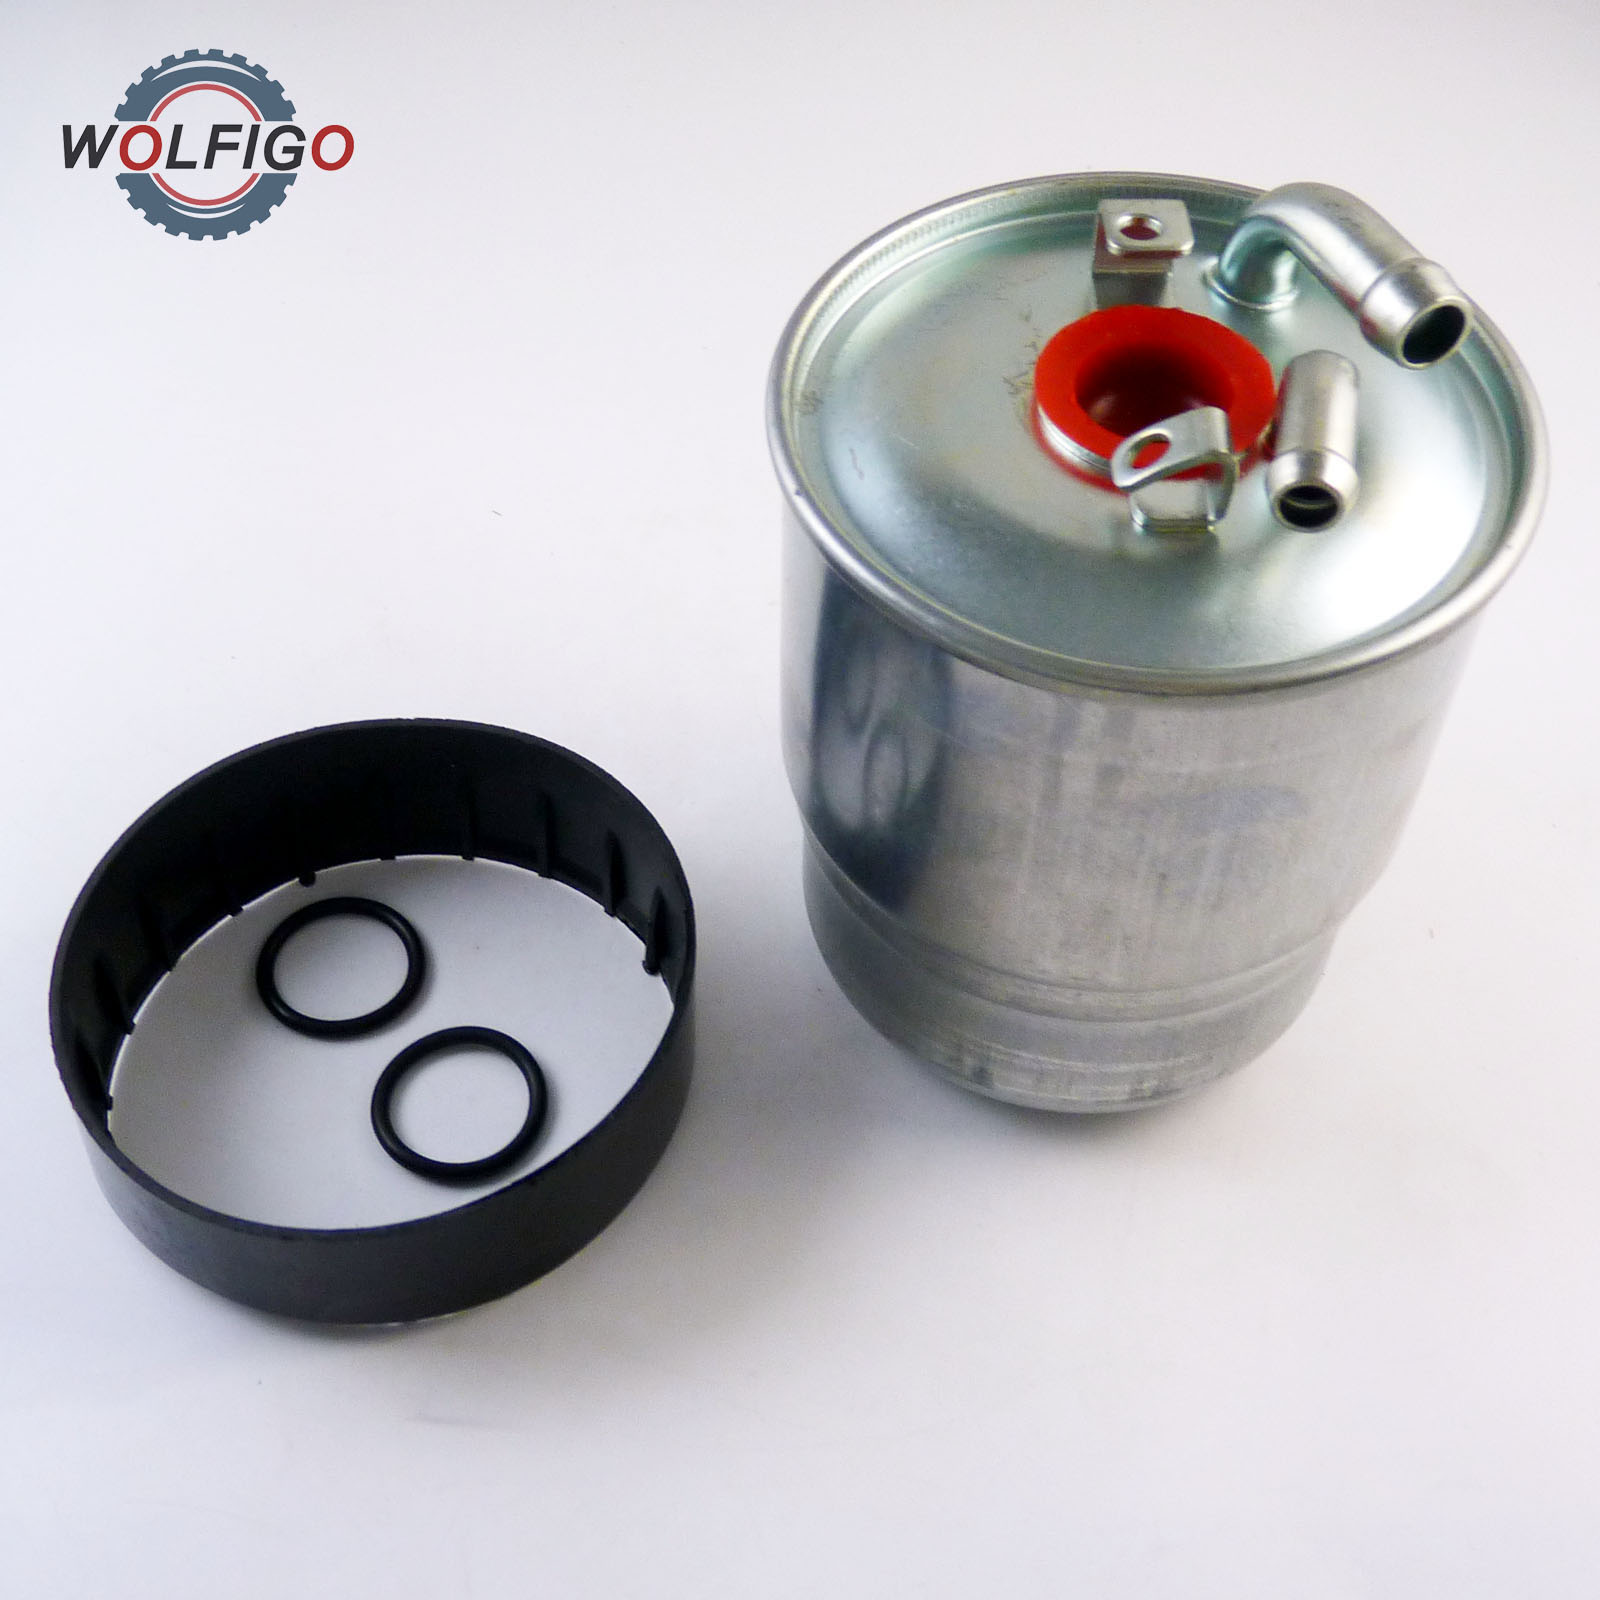 hight resolution of wolfigo fuel filter 6420920501 for mercedes benz r350 gl320 e320 for dodge freightliner sprinter 2500 dodge sprinter 3500